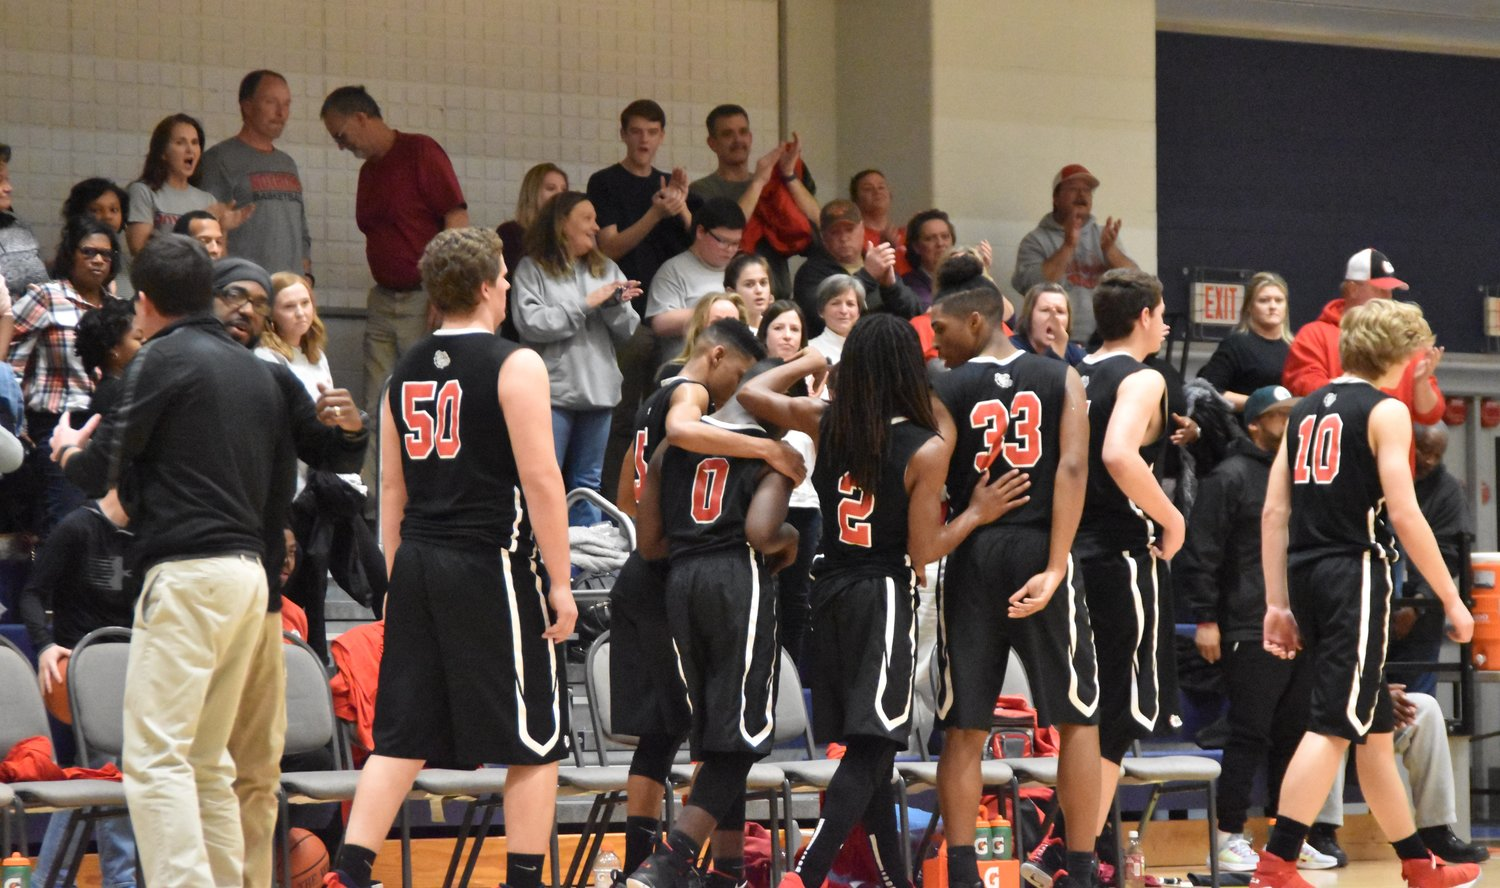 Players on the Roxboro Community School boys' basketball team console each other while getting cheers from their supporters following their 71-57 loss at Henderson Collegiate in the fourth round of the 1A state playoffs Tuesday. It was the deepest playoff run in the program's history.